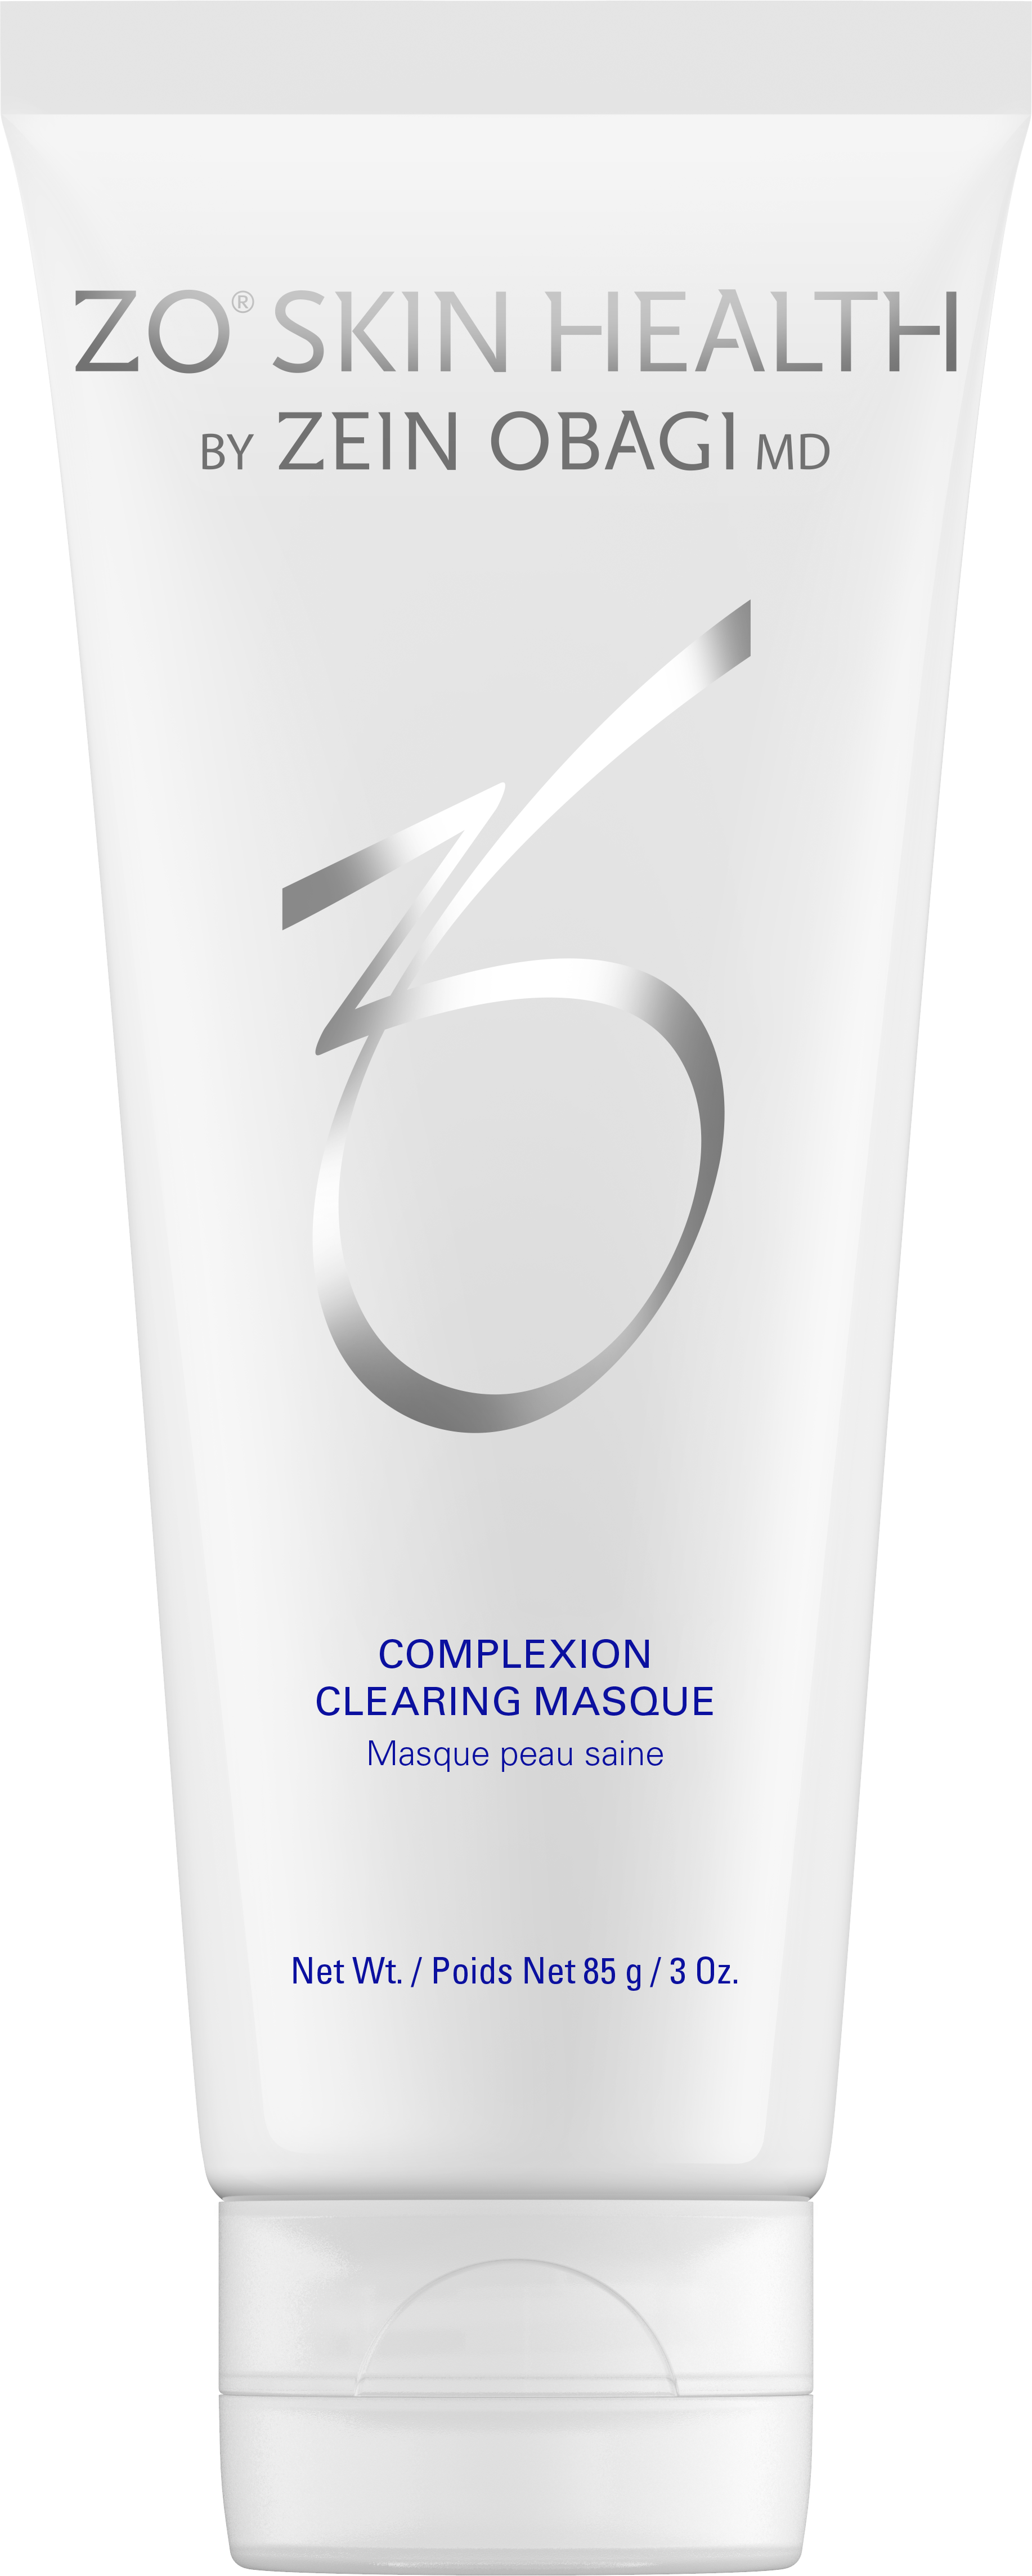 Complexion Clearing Masque